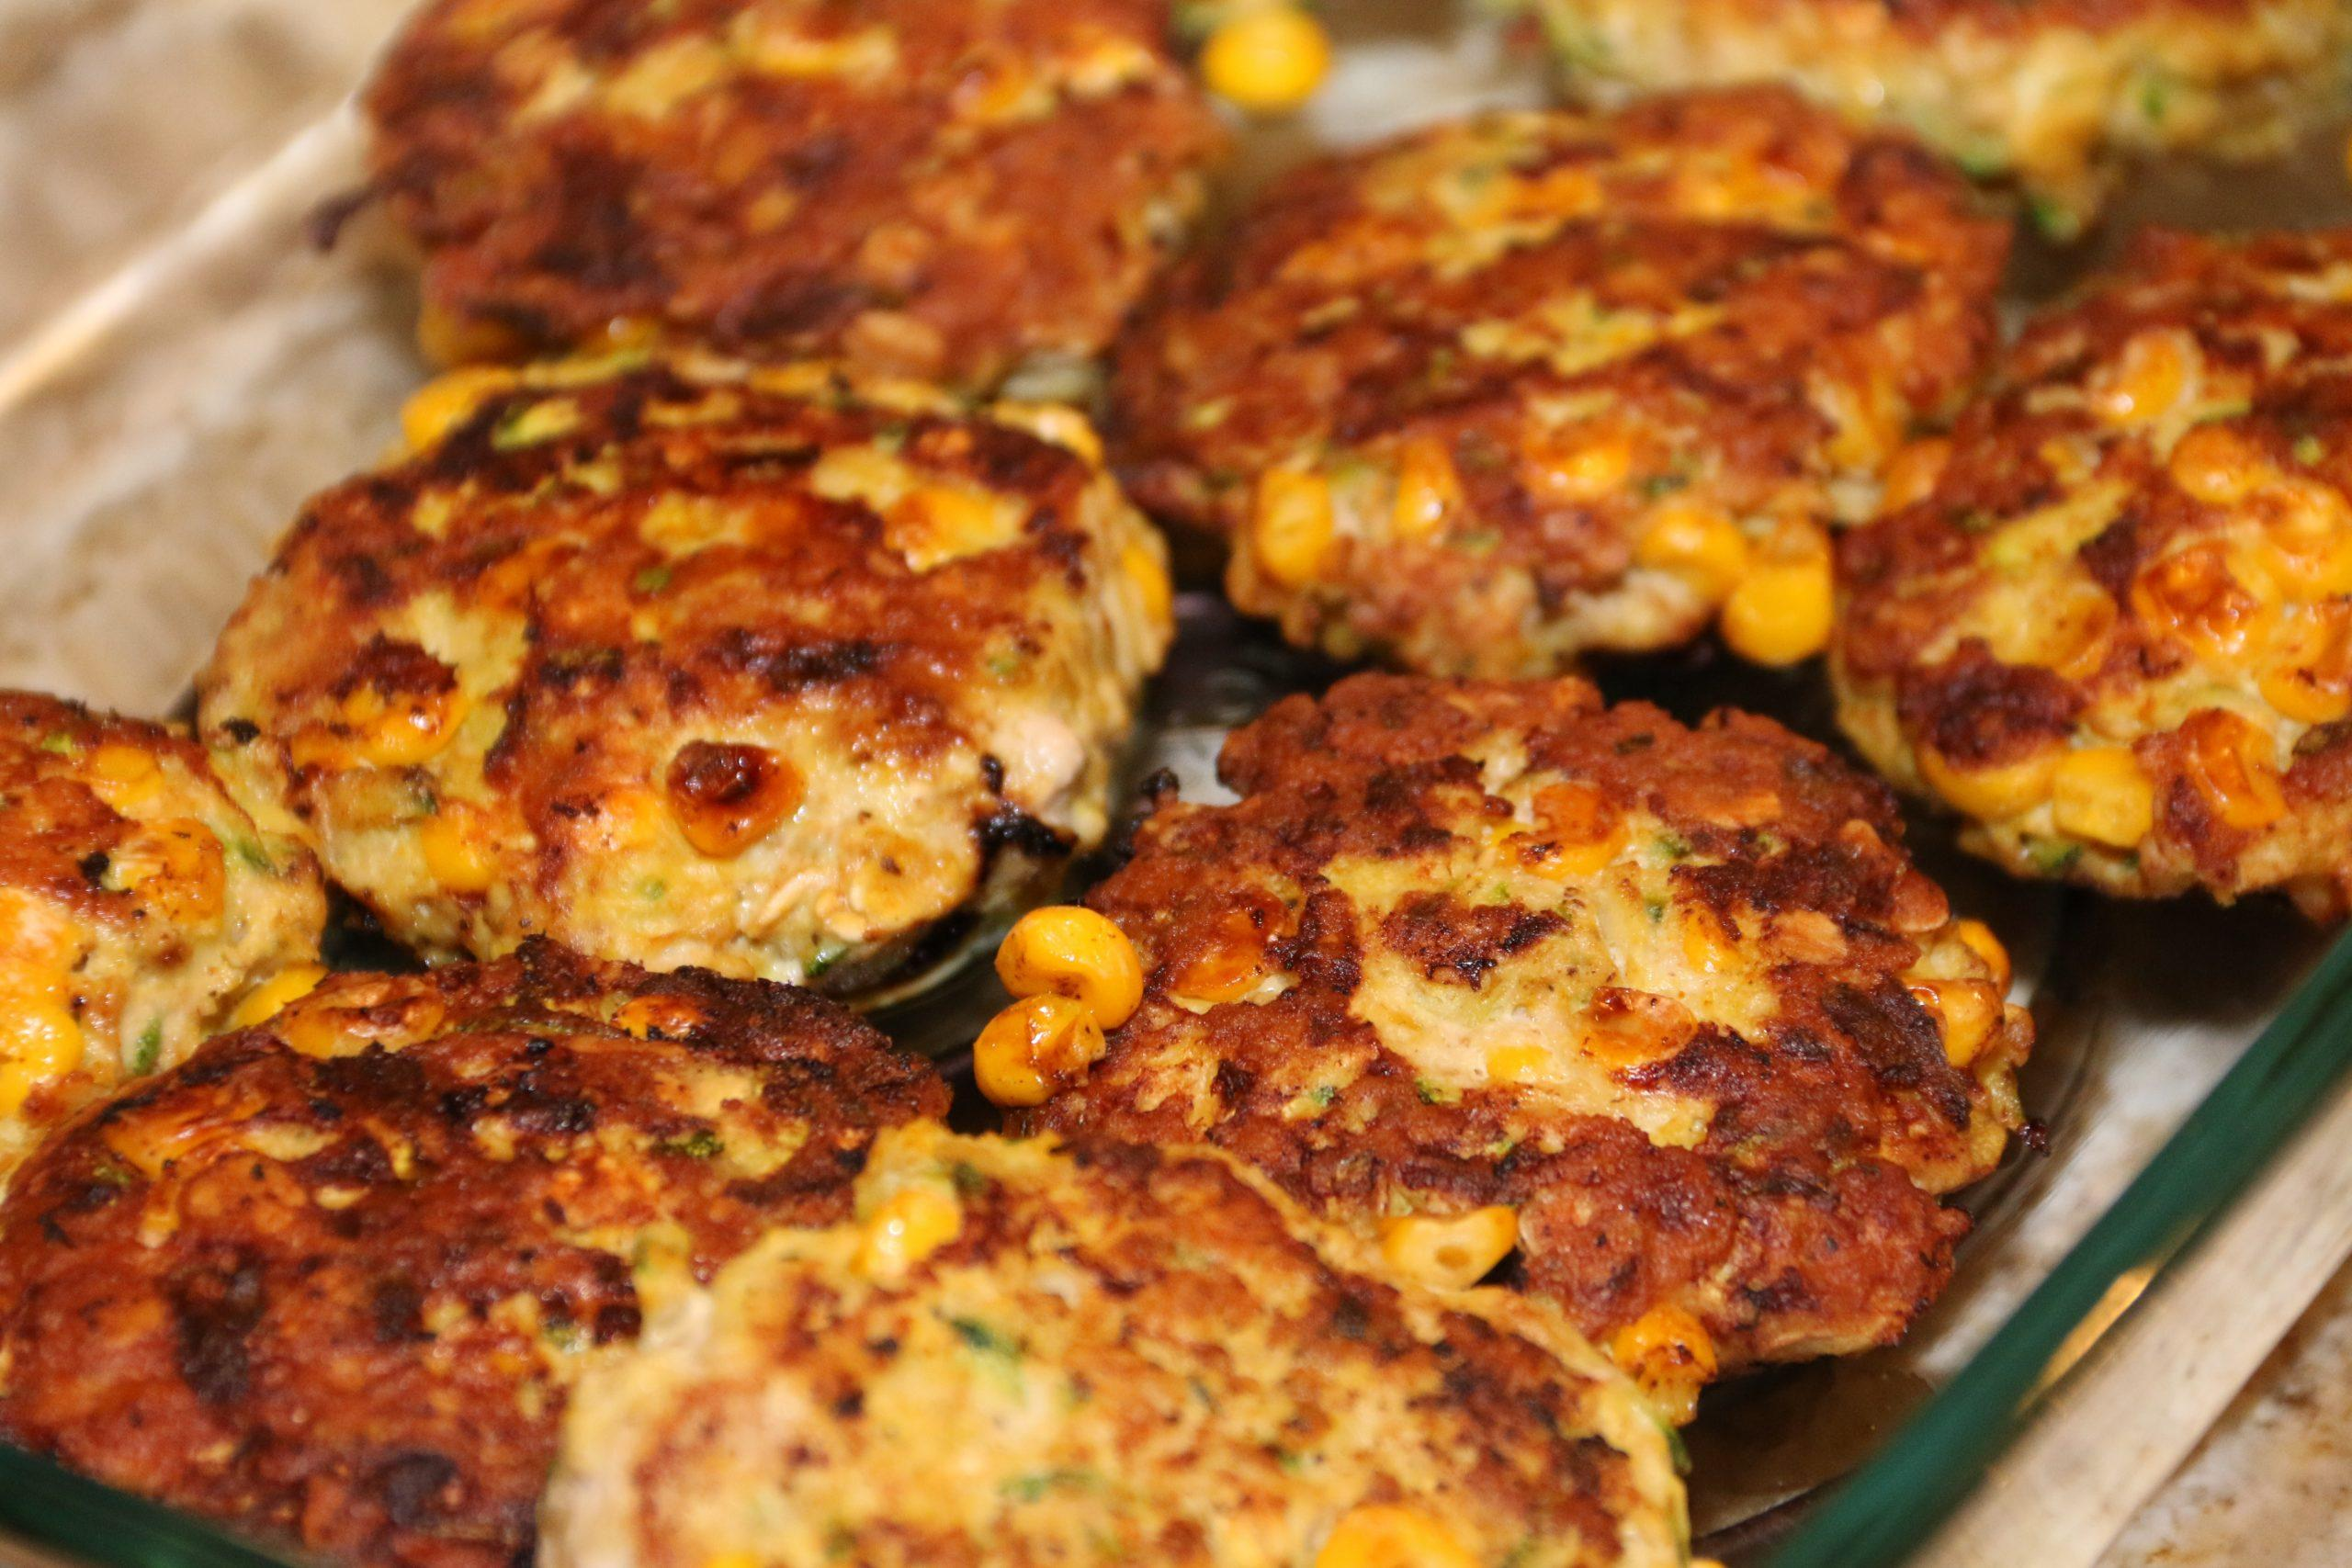 These chicken patties are filled with a healthy dose of zucchini and corn! Make them ahead of time for an easy lunch for the whole week.